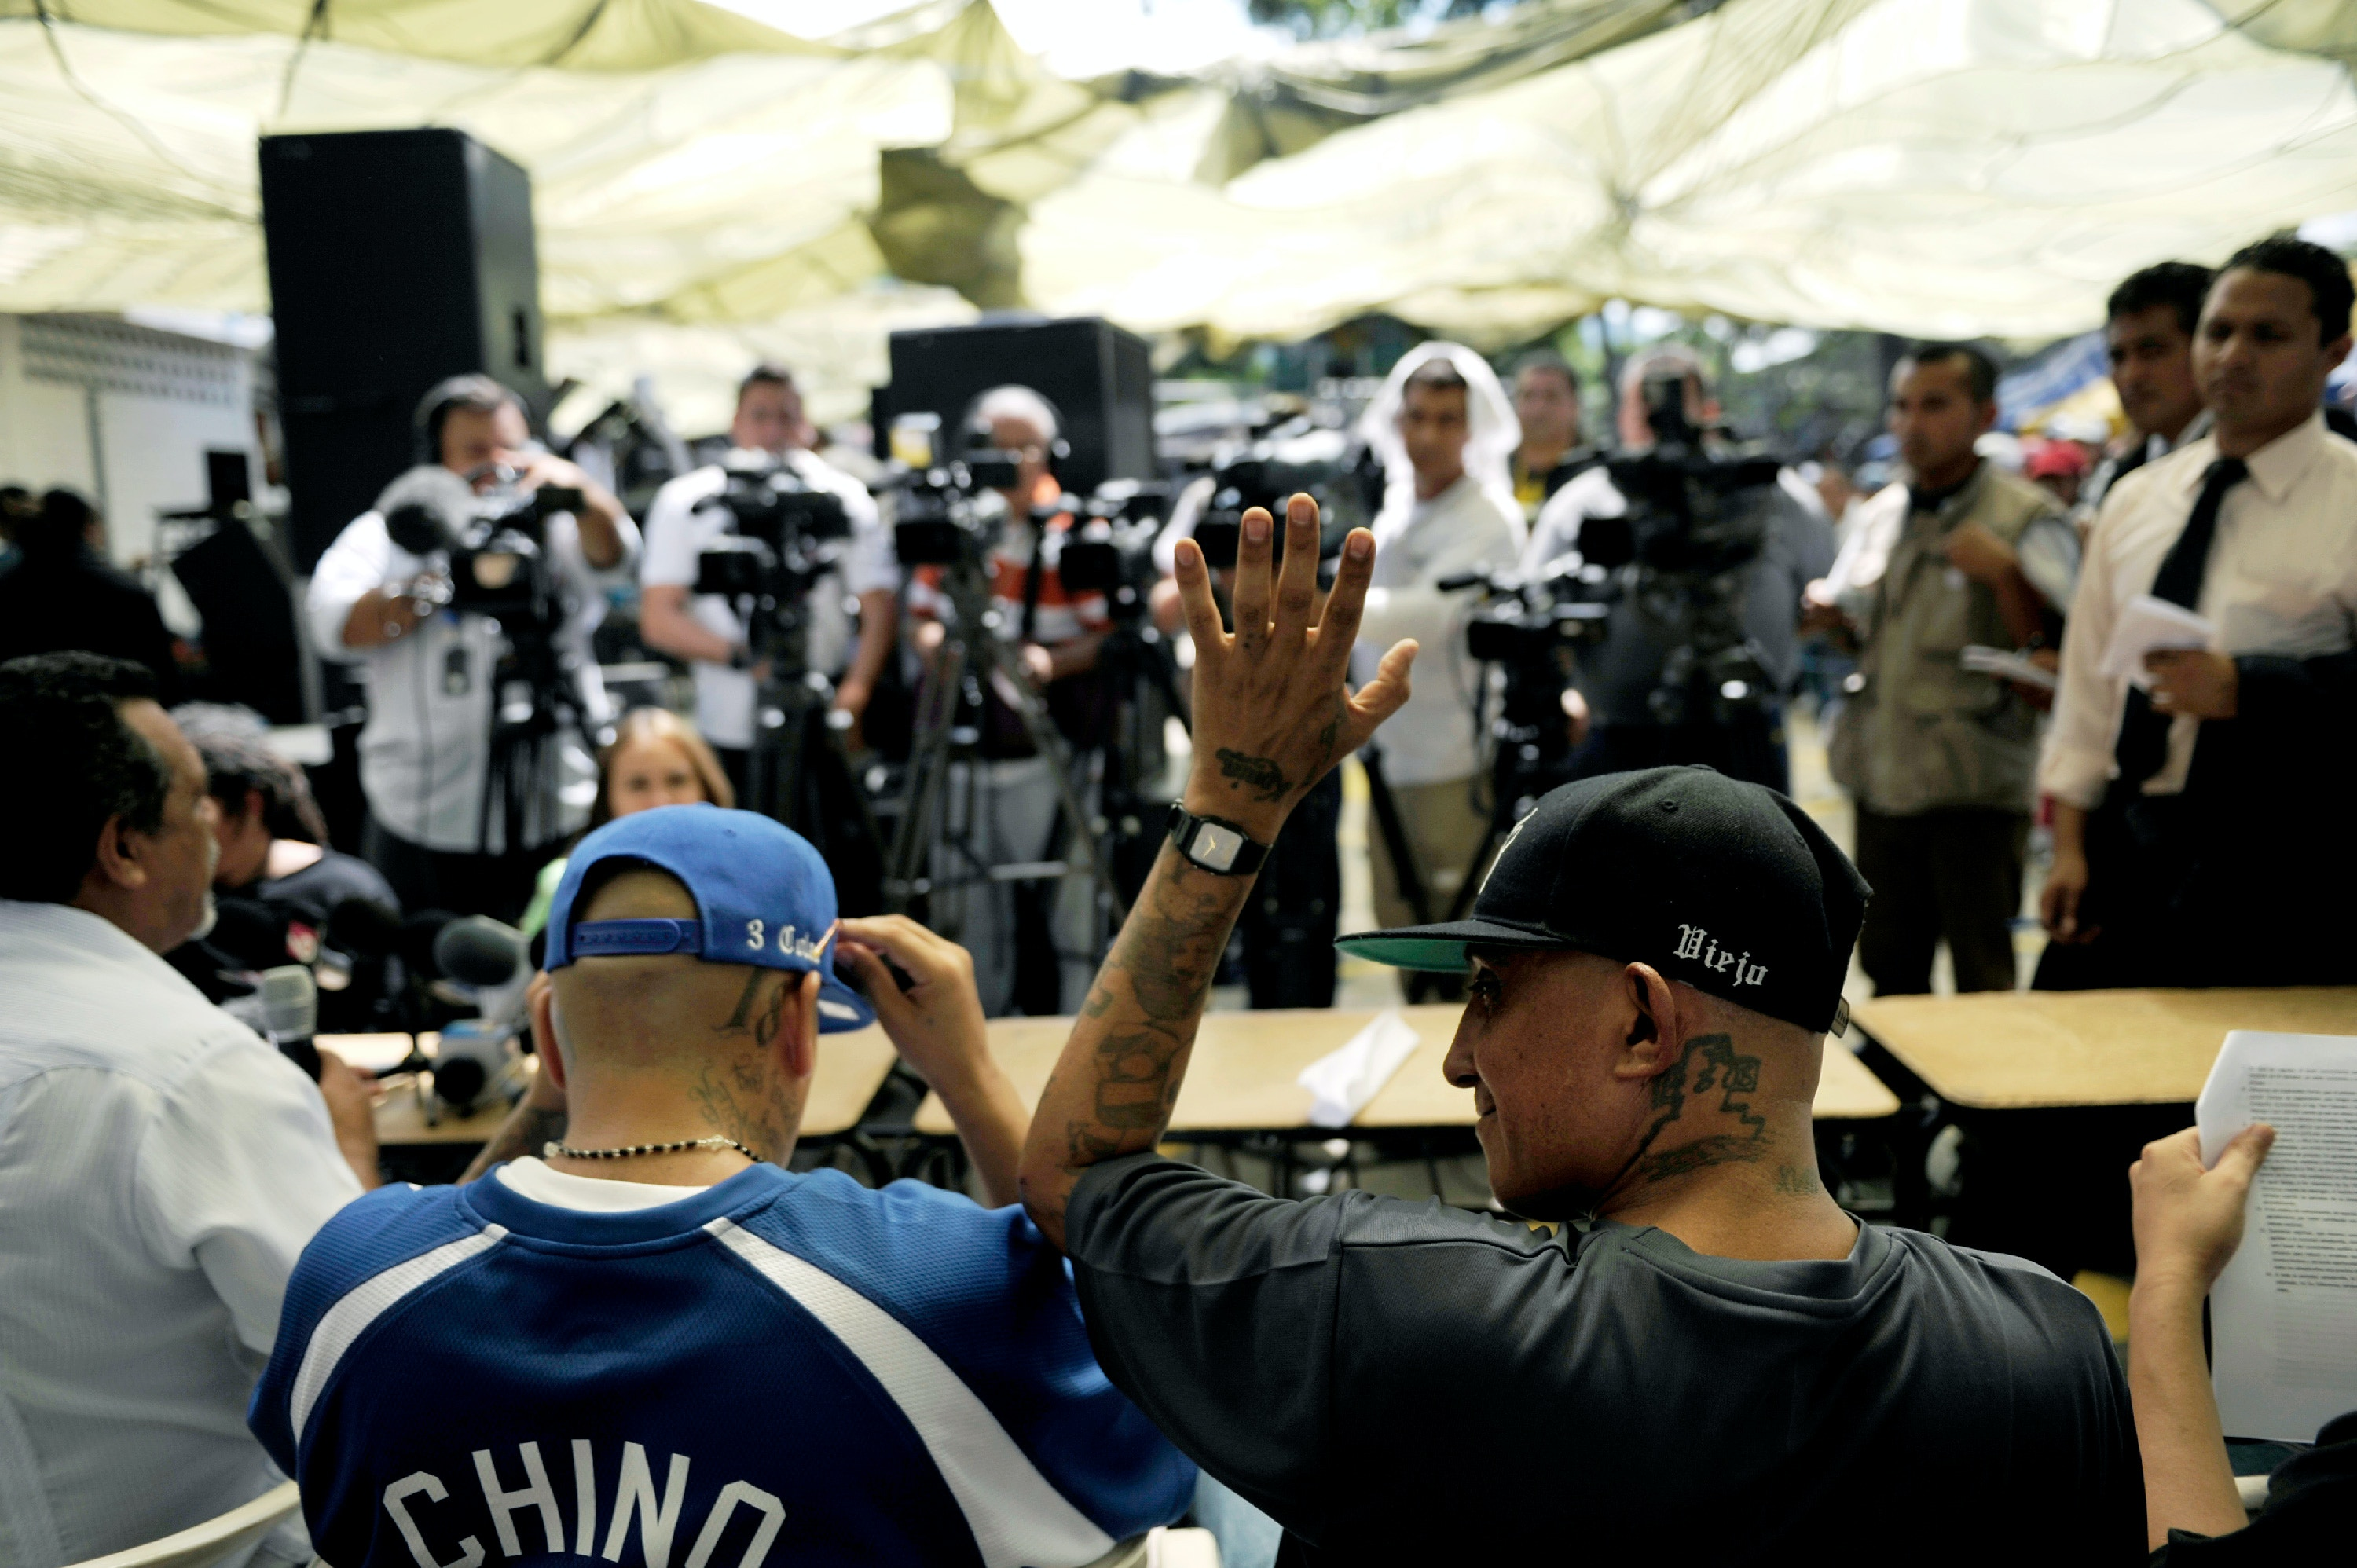 "The leader of the Mara 18 (18th Street Gang), Carlos Mojica Lechuga, a.k.a. ""El Viejo Lin"" (R), gestures during a press conference at the Female Jail in San Salvador, El Salvador on September 24, 2012. The leaders of the Mara 18 and Salvatrucha offered a press conference during the celebration of the 200 days of truce between them to reduce murder.  AFP PHOTO/Jose CABEZAS        (Photo credit should read Jose CABEZAS/AFP/GettyImages)"